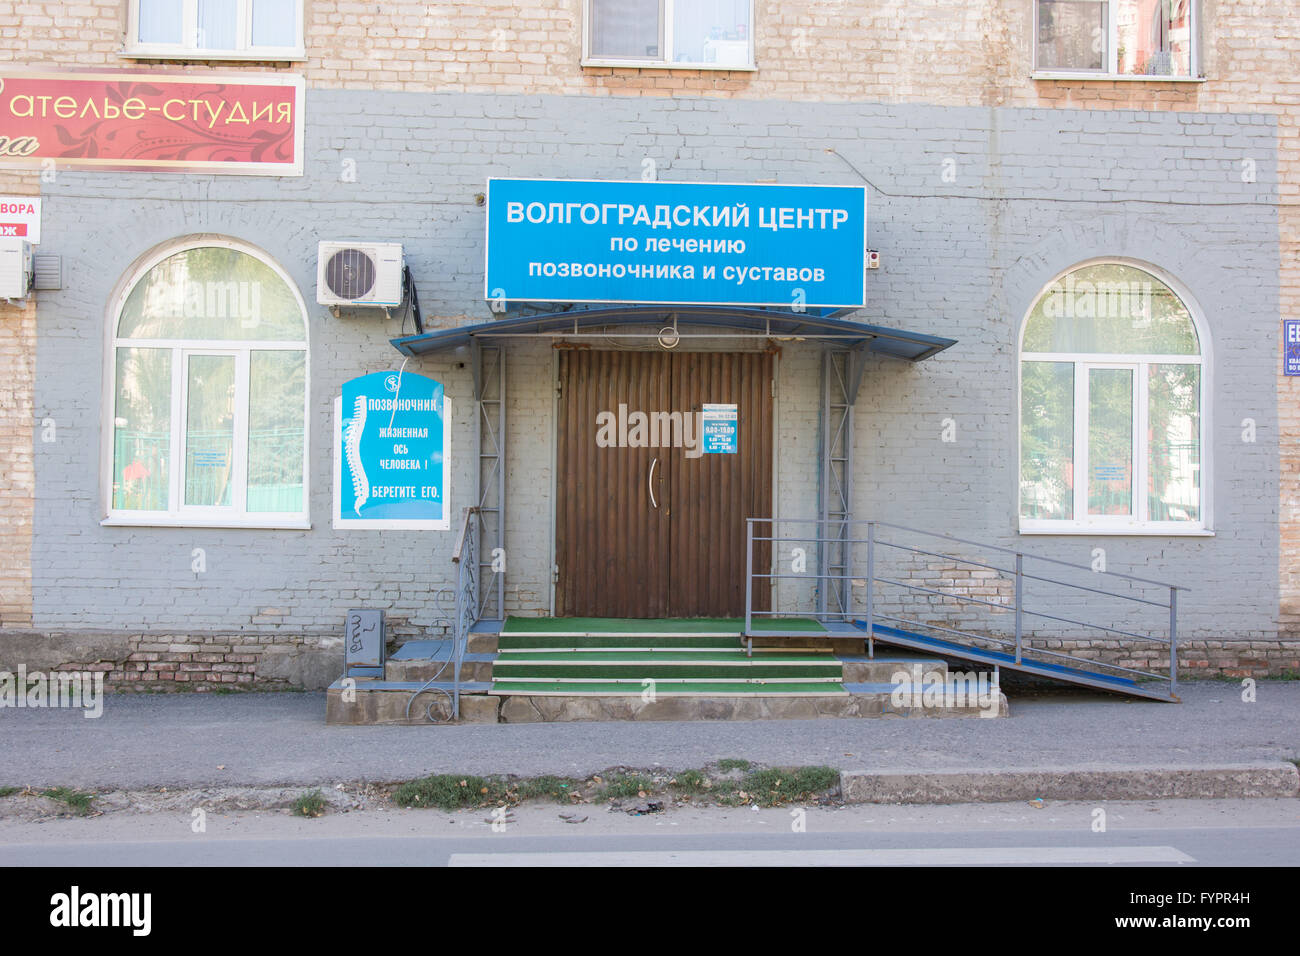 View of the Volgograd Regional Center for the treatment of spine and joints, LLC Sirius - Stock Image